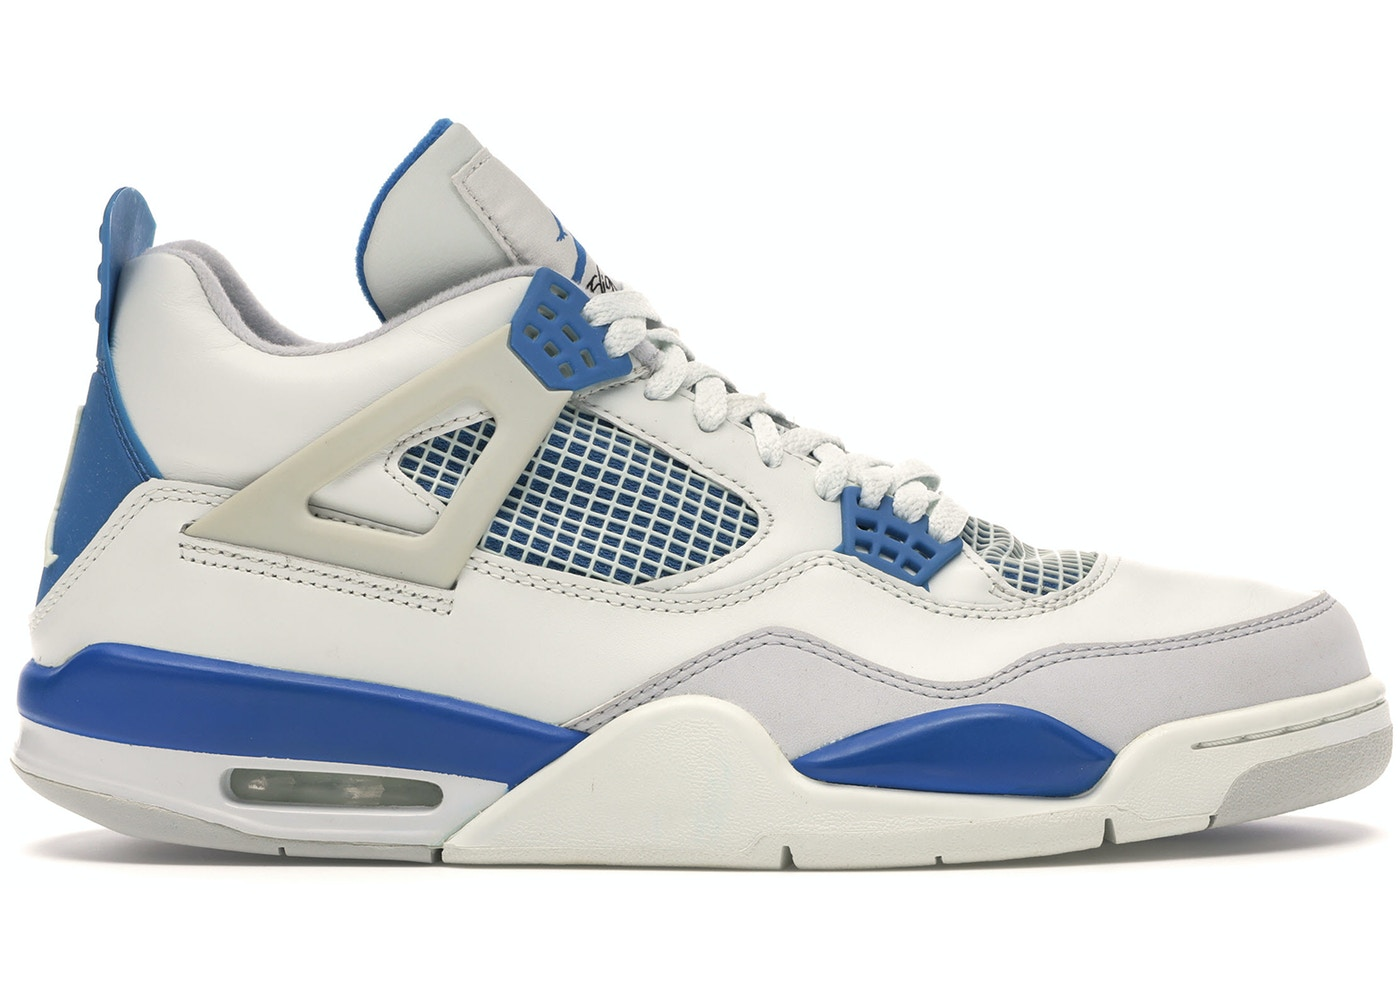 new styles ef888 77425 Jordan 4 Retro Military Blue (2006)